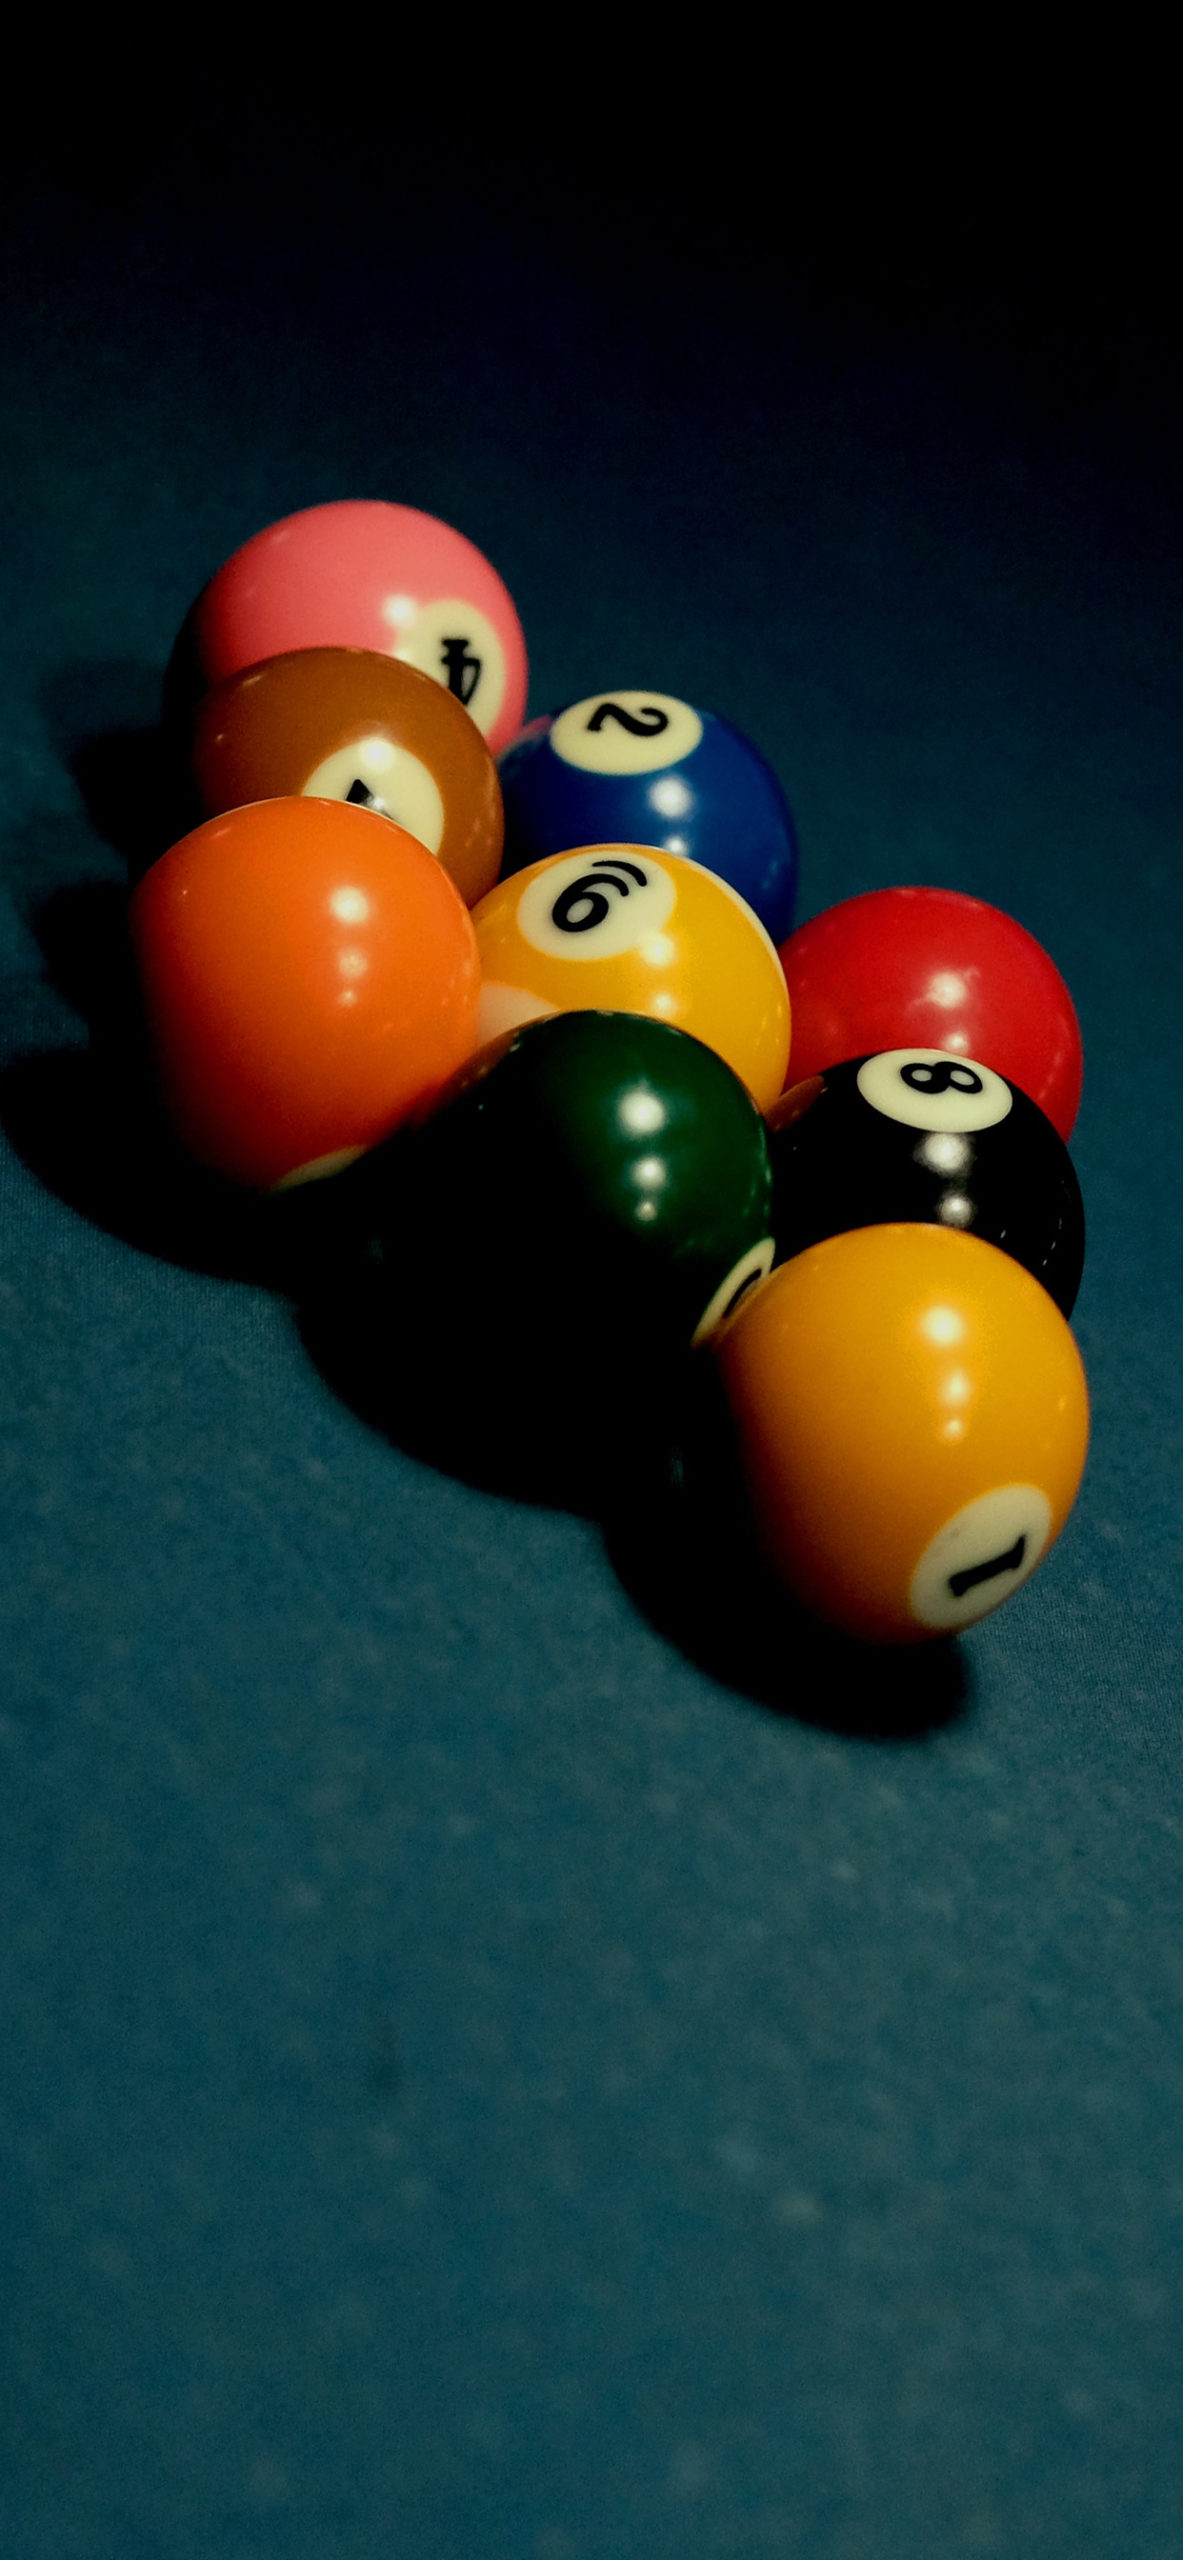 iphone Wallpapers pool balls scaled Pool game